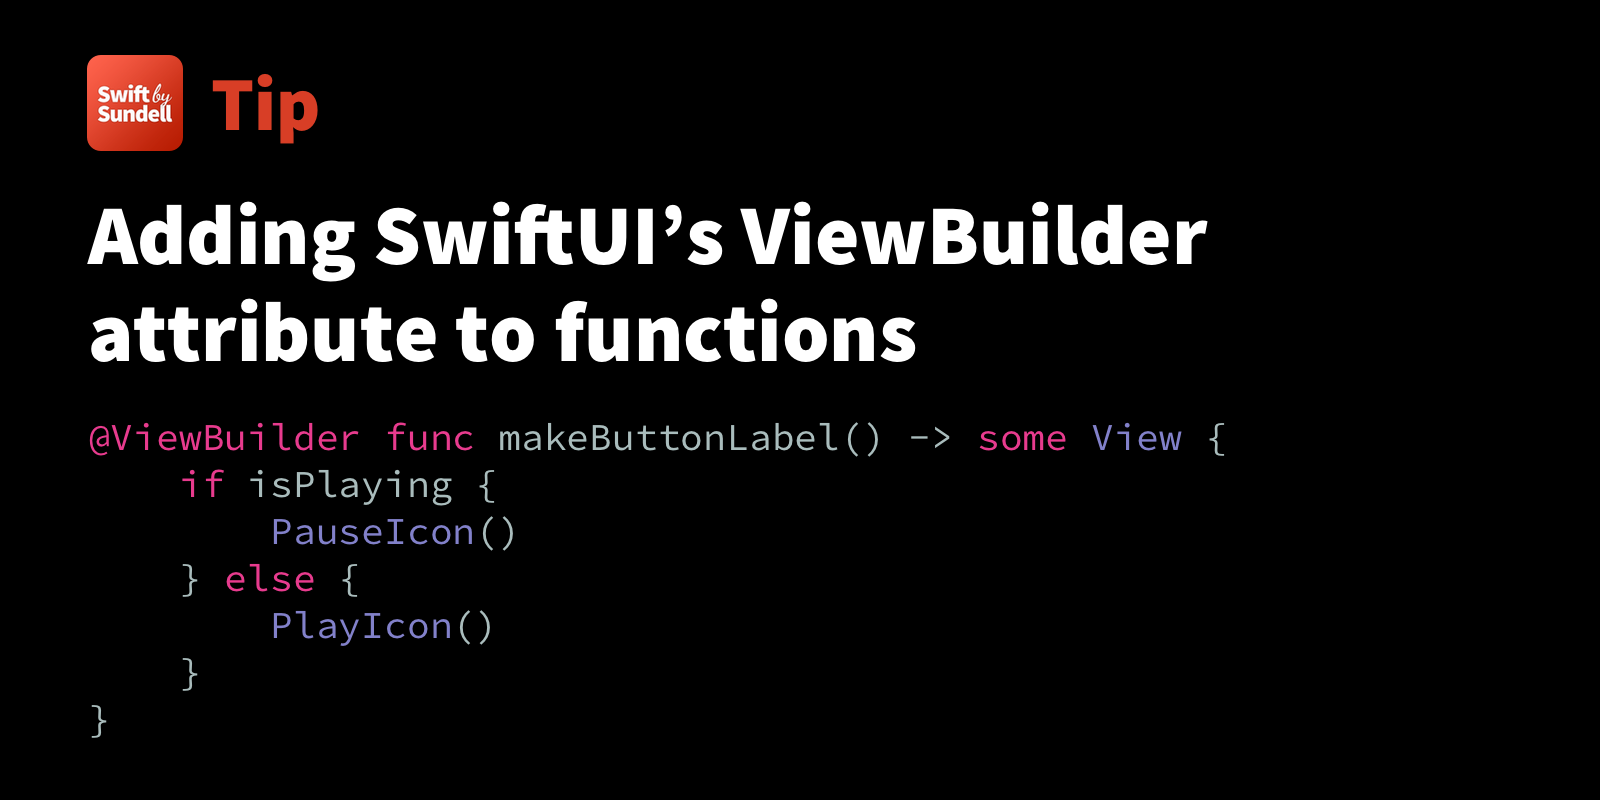 Tip: Adding SwiftUI's ViewBuilder attribute to functions